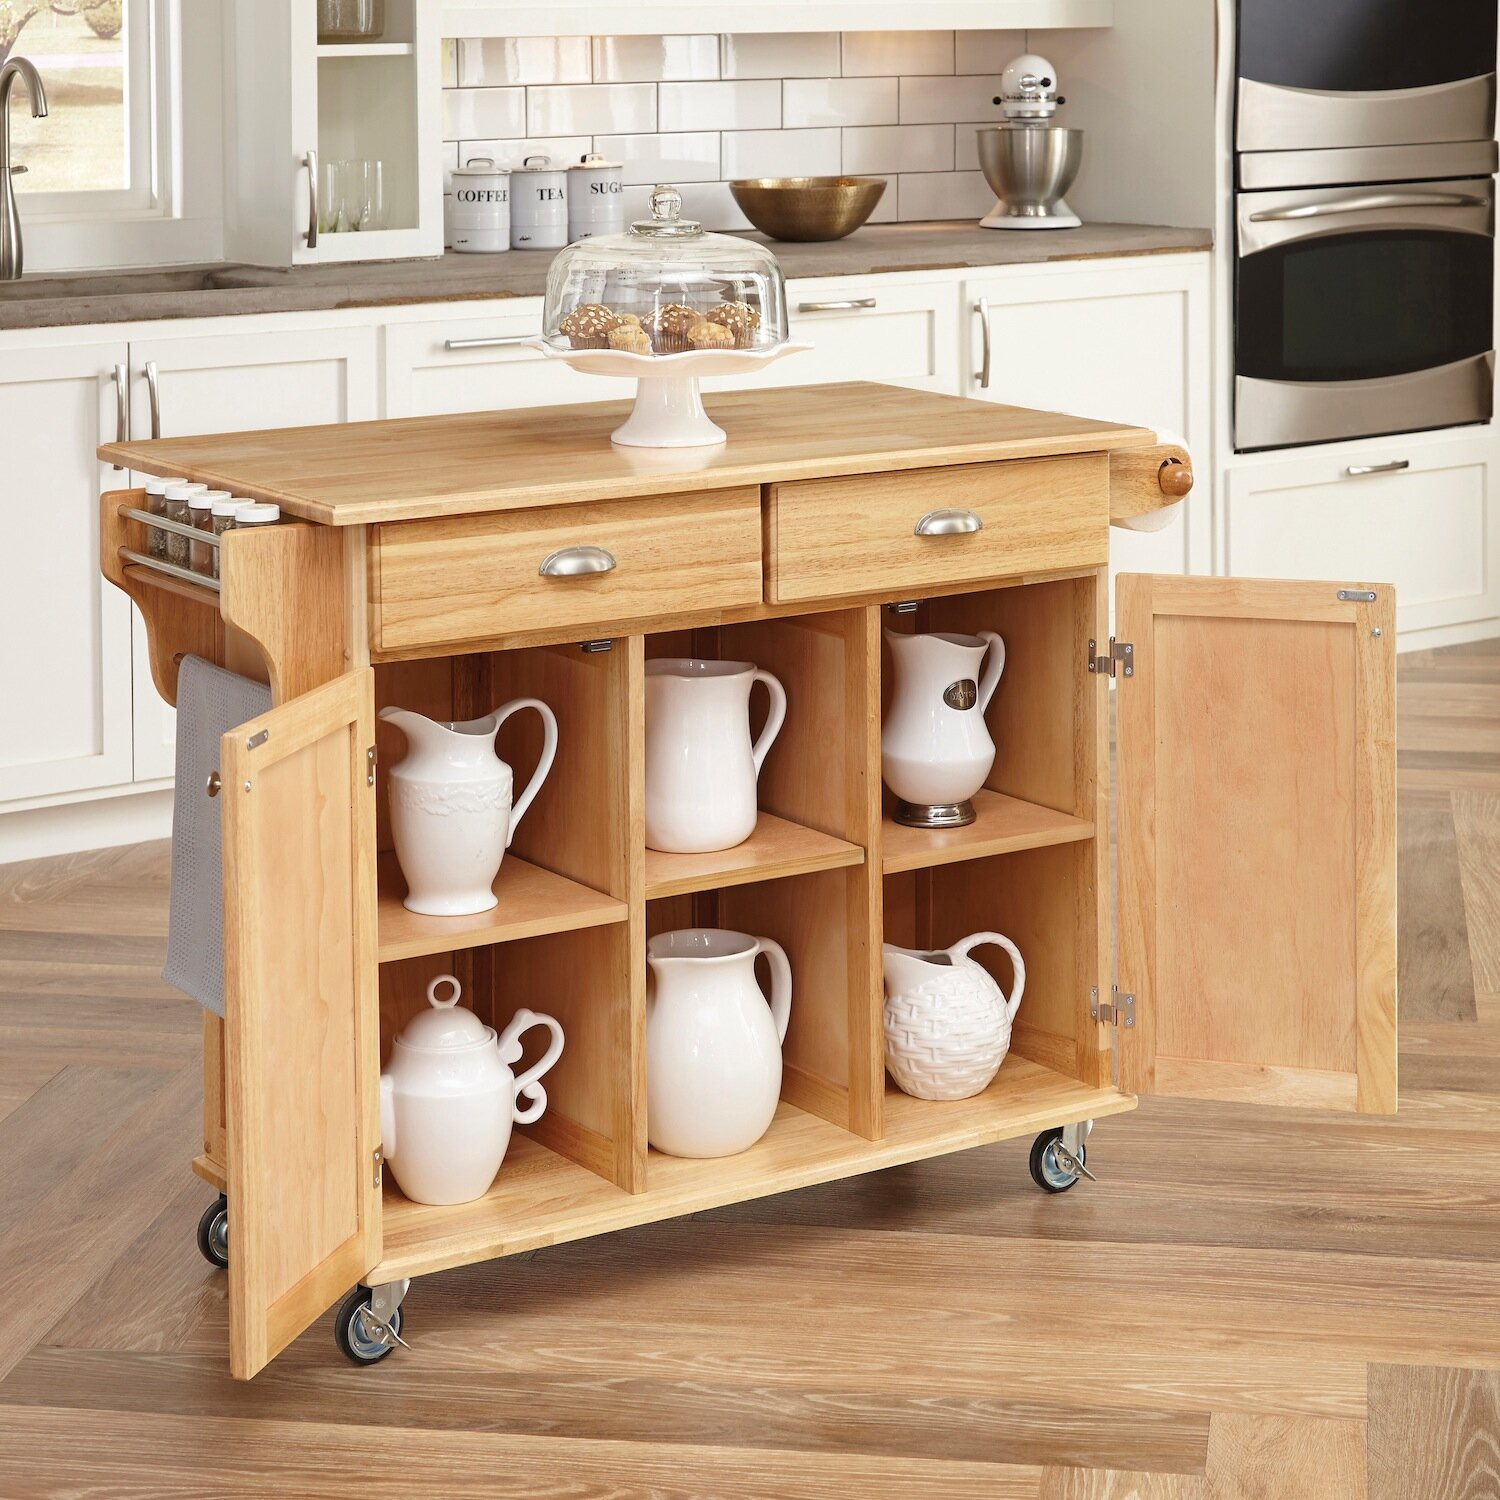 august grove lili kitchen island with wood top reviews wayfair. Black Bedroom Furniture Sets. Home Design Ideas